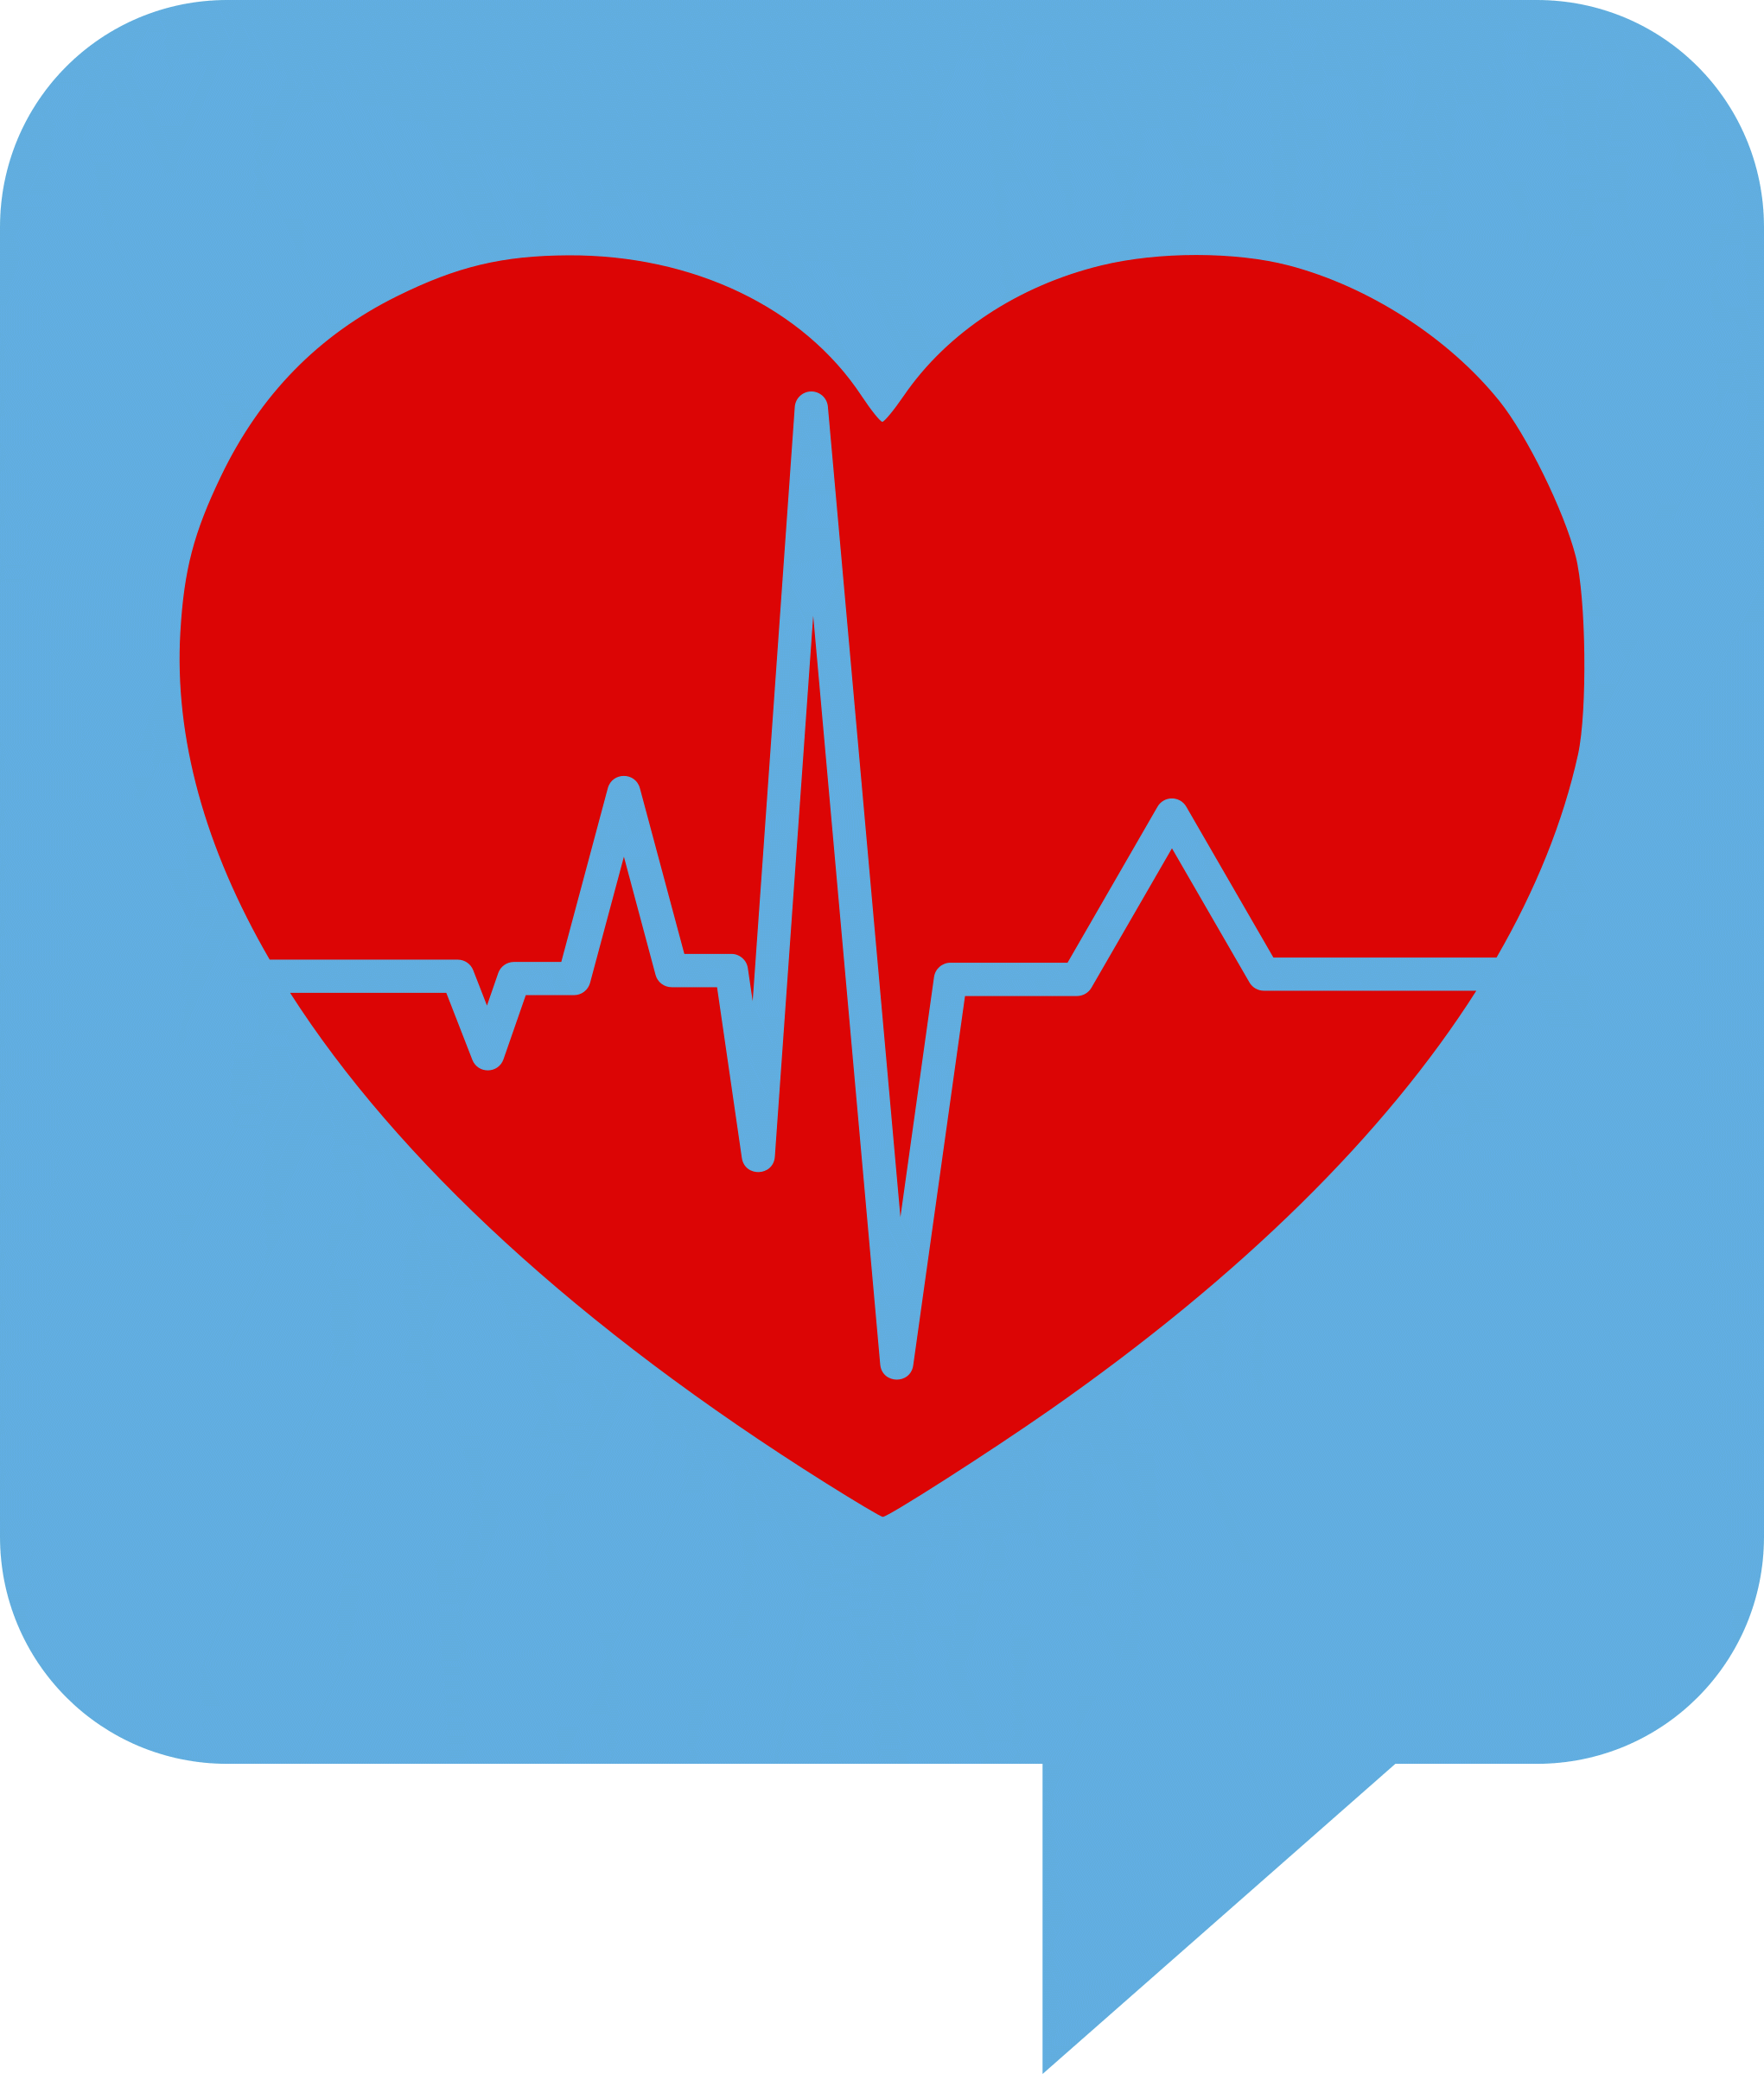 Exercising clipart heart. Rate healthy free collection